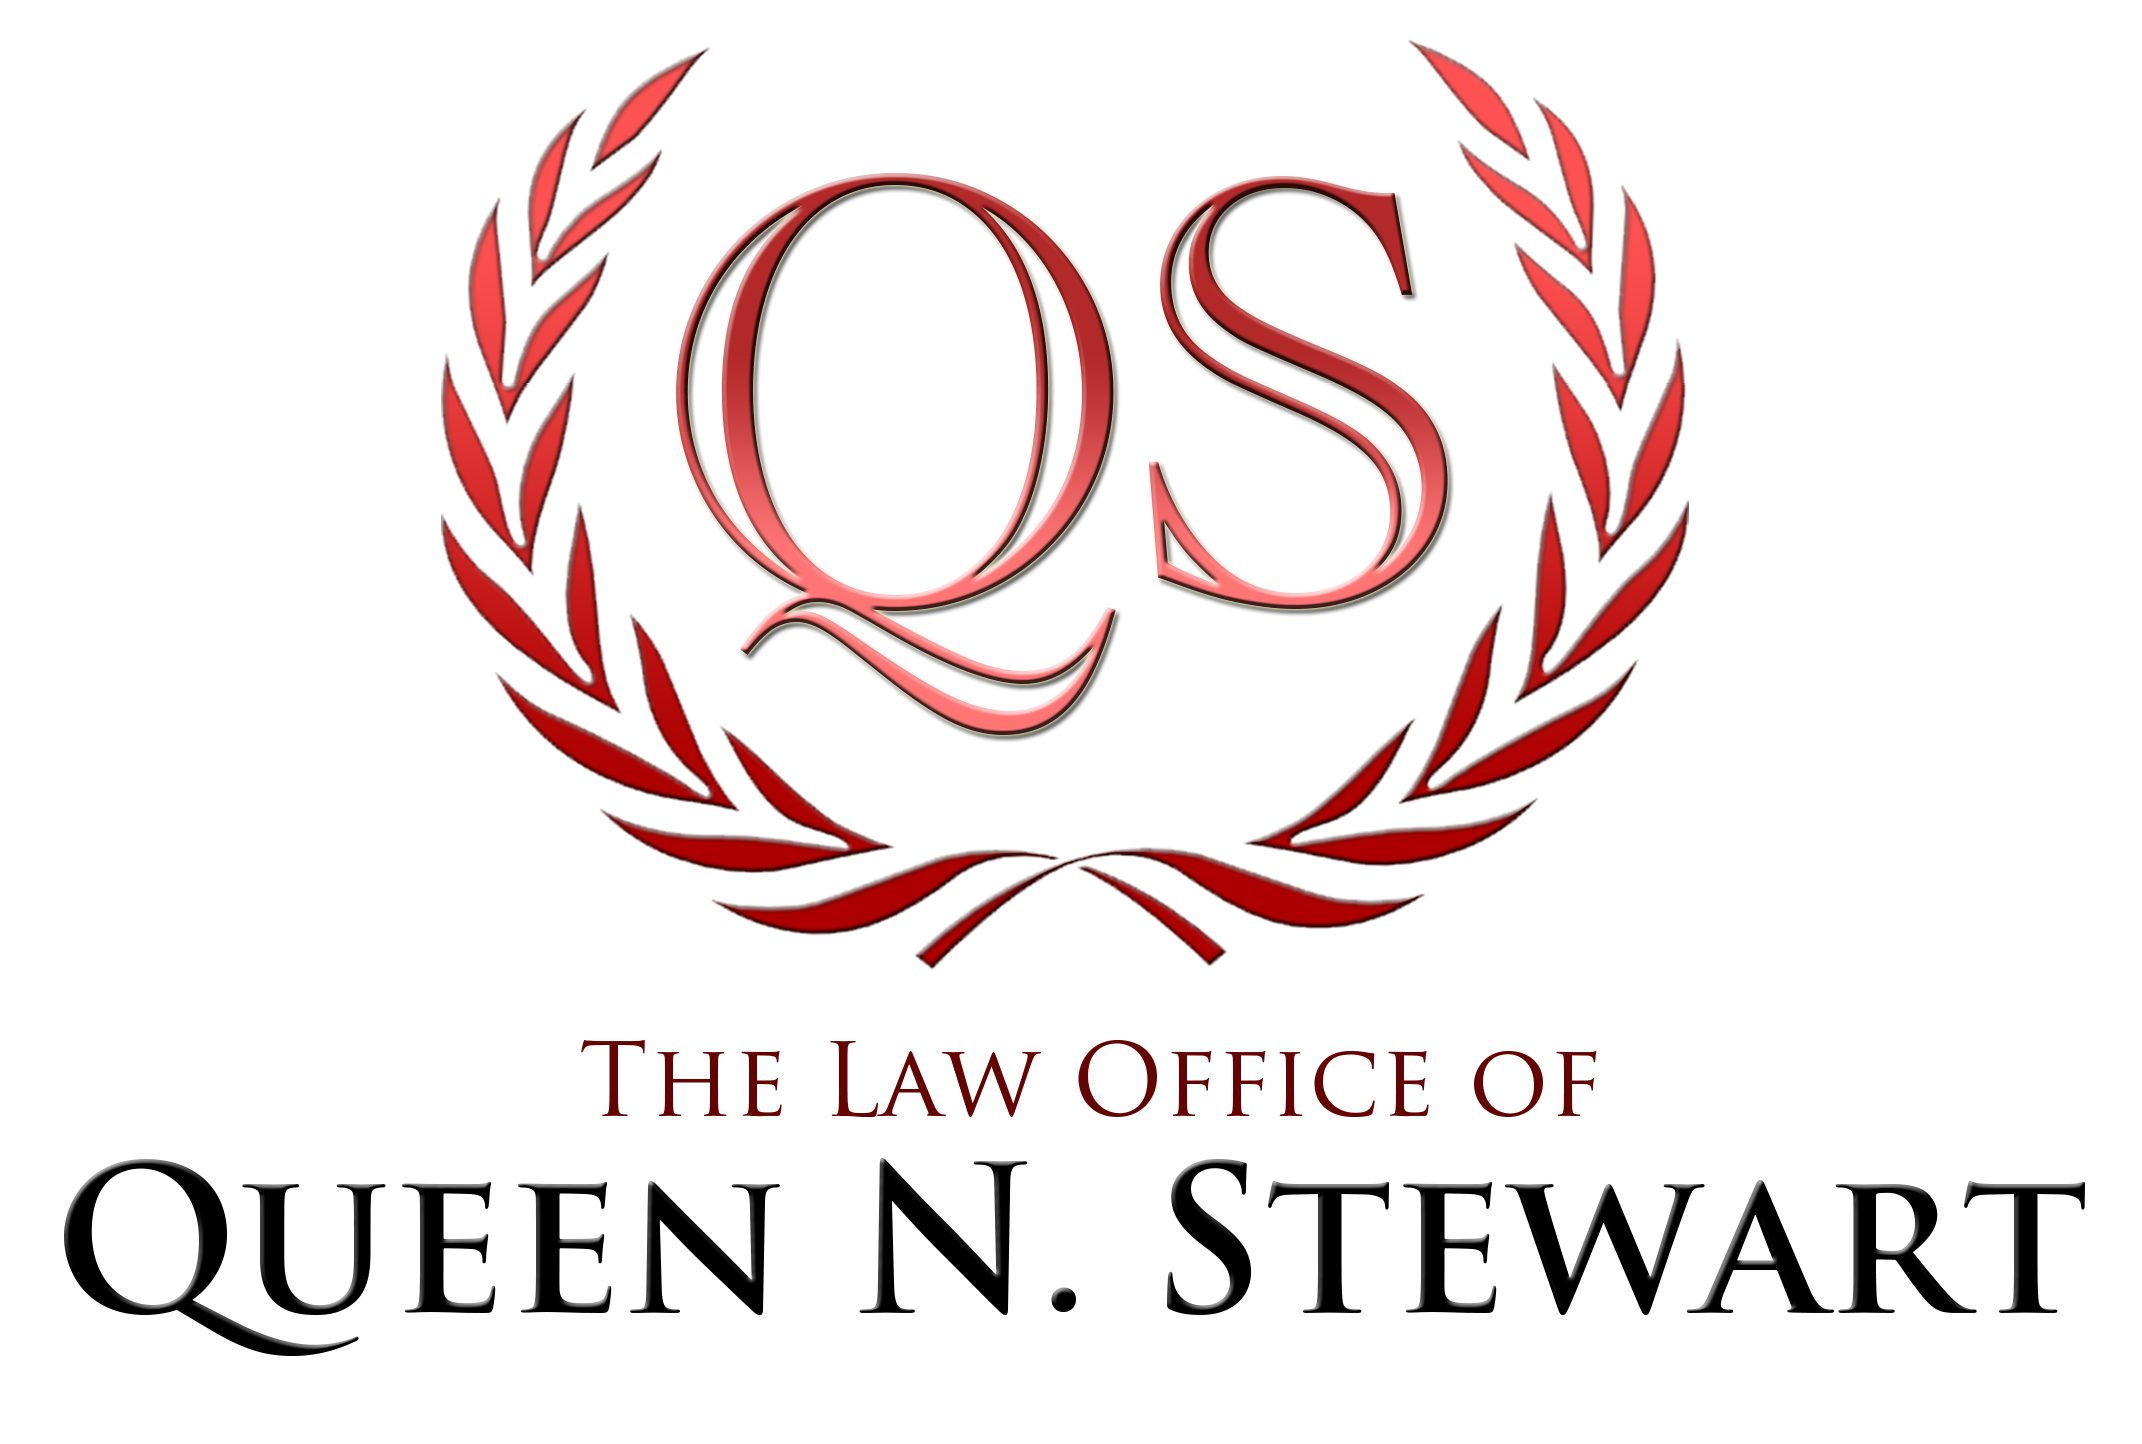 Queenlaw-logo-cropped